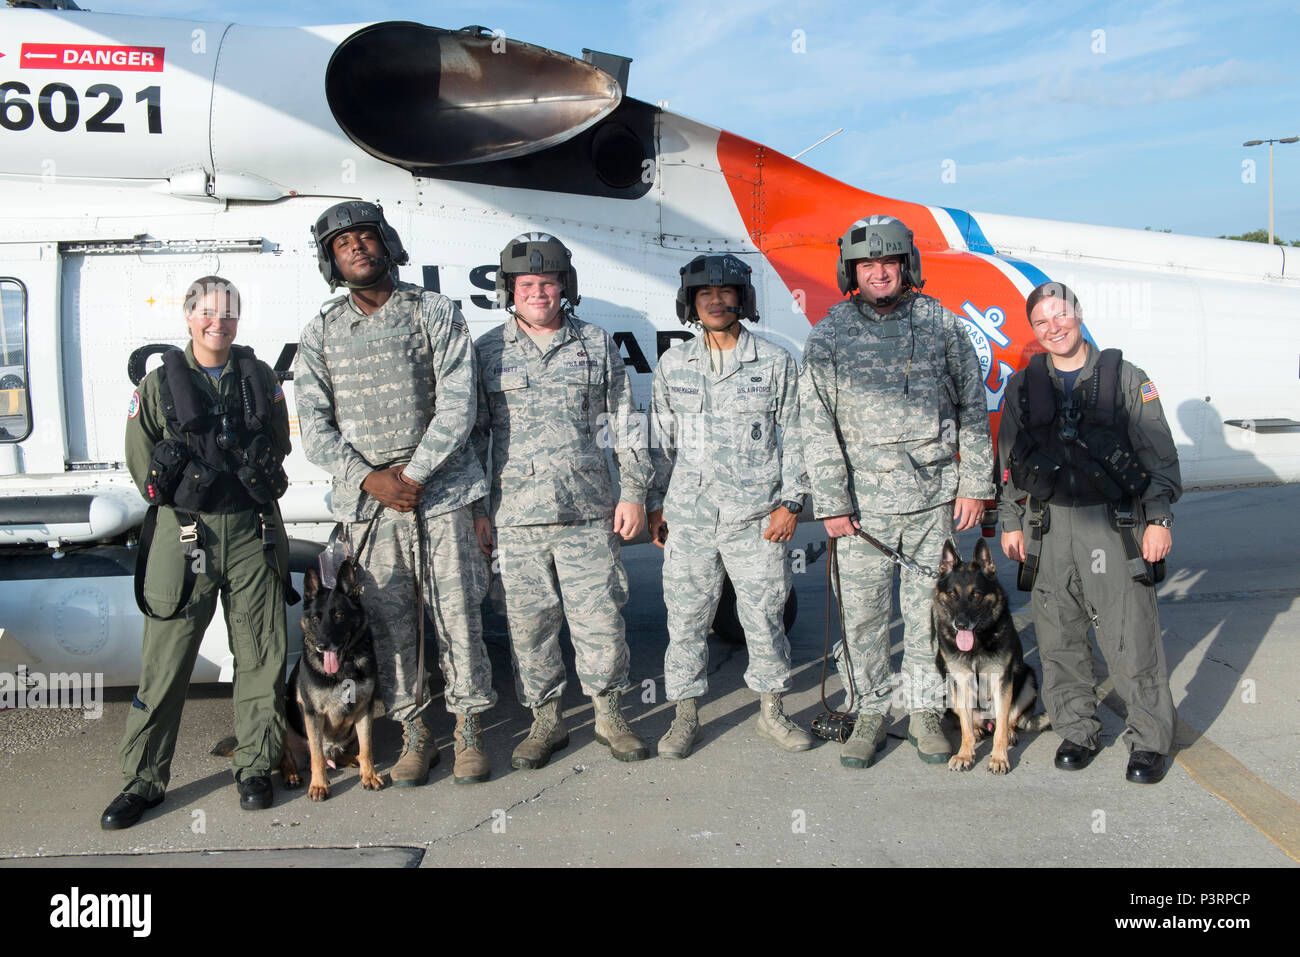 Members from Coast Guard Air Station Clearwater, Fla., team up with members from Air Force 6th Security Forces Squadron, military working dog division, MacDill Air Force Base, Tampa, Fla. to conduct canine training at the air station, Friday, July 29, 2016. The training helps prepare the dogs for the sights and sounds of a helicopter prior to deployment. (U.S. Coast Guard photo by Petty Officer 2nd Class Ashley J. Johnson) Stock Photo